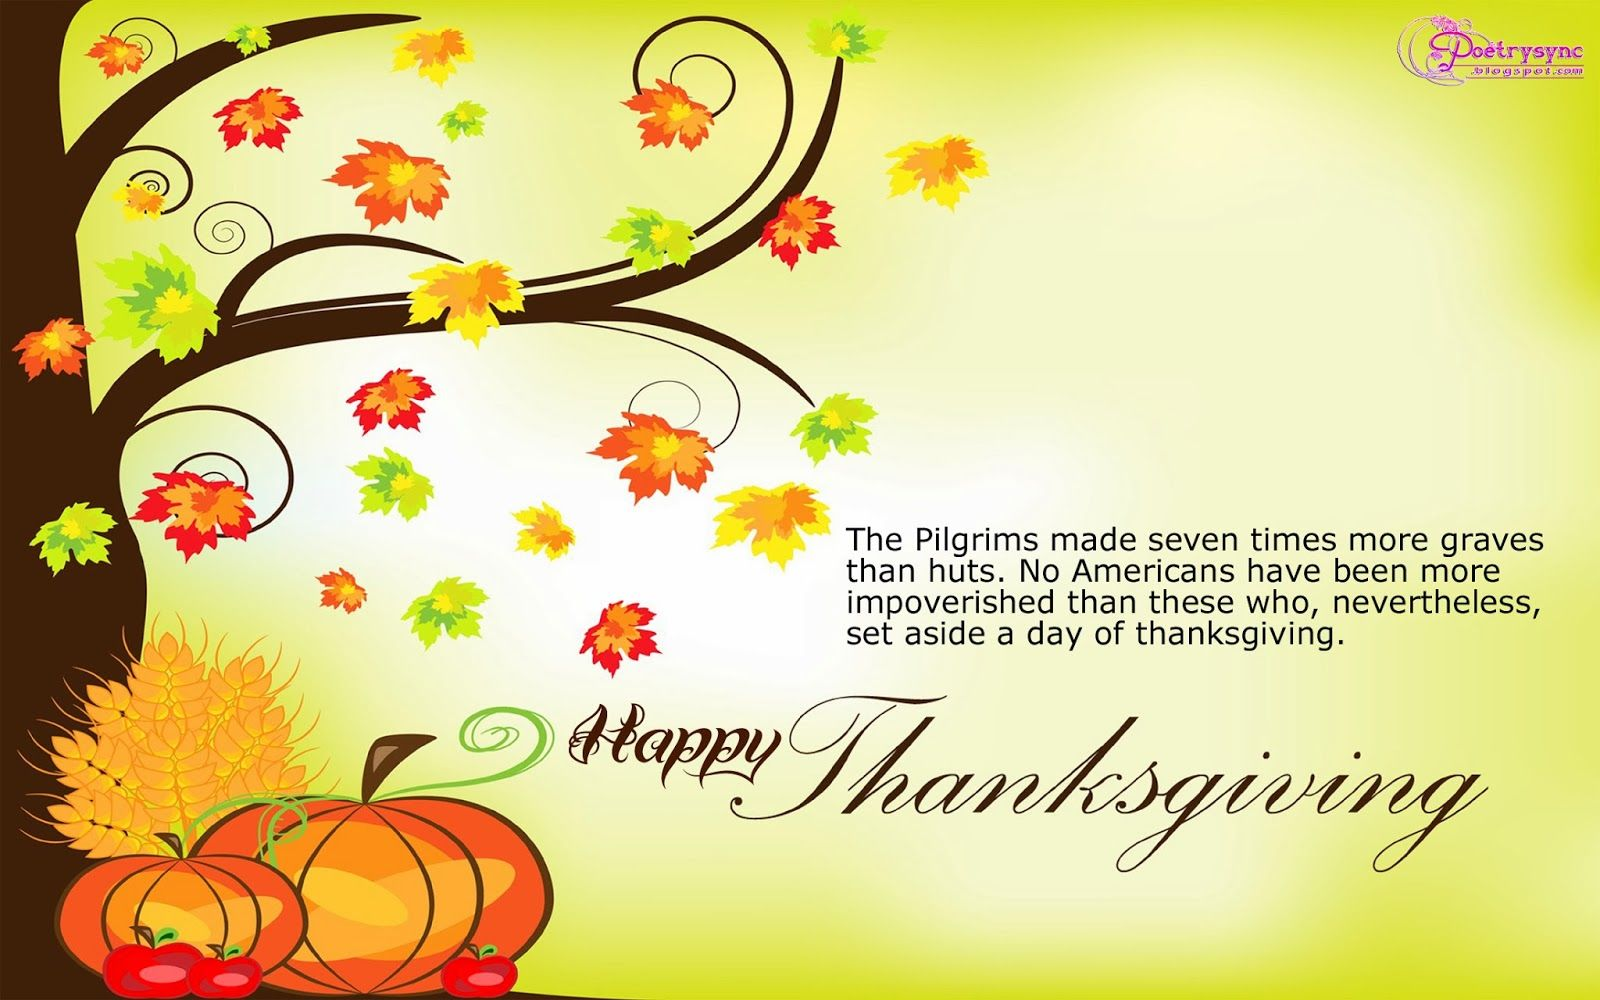 Happy thanksgiving wishes 2014 thanksgiving greetings messages happy thanksgiving wishes 2014 thanksgiving greetings messages sayings quotes happy thanksgiving 2016 pinterest happy thanksgiving and thanksgiving kristyandbryce Image collections